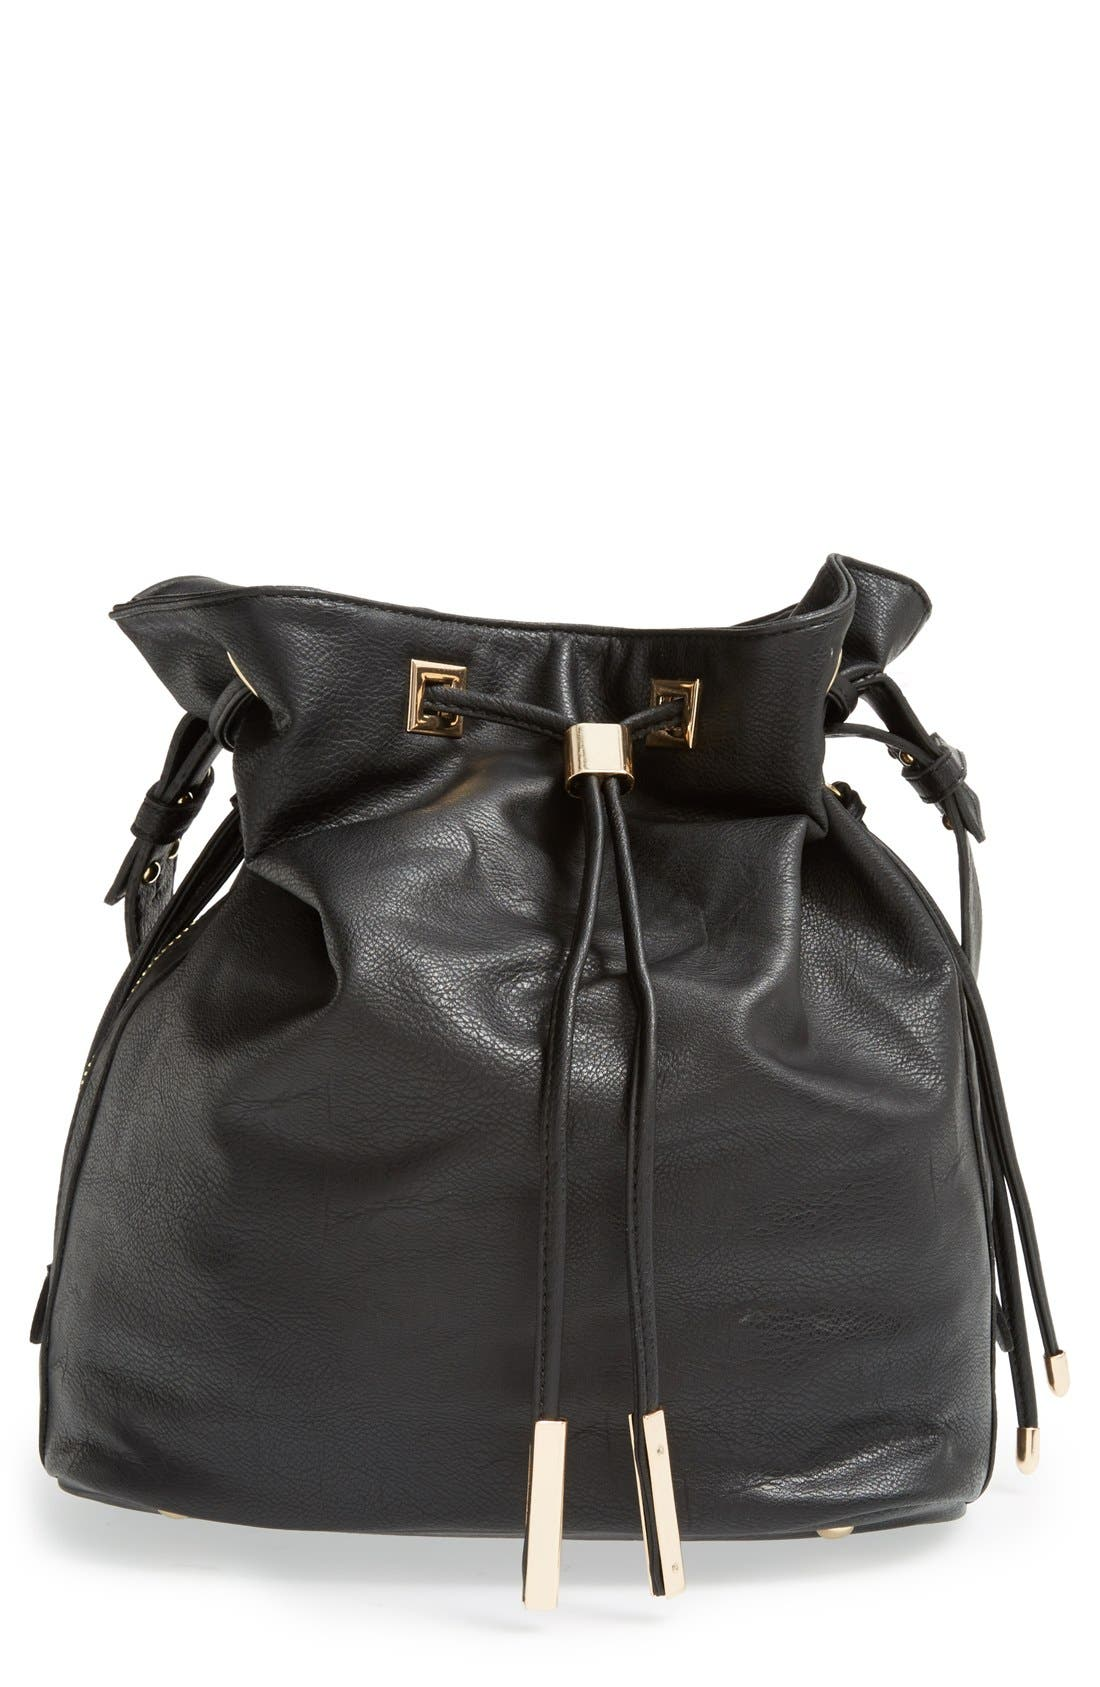 Main Image - Sole Society 'Logan' Faux Leather Bucket Bag